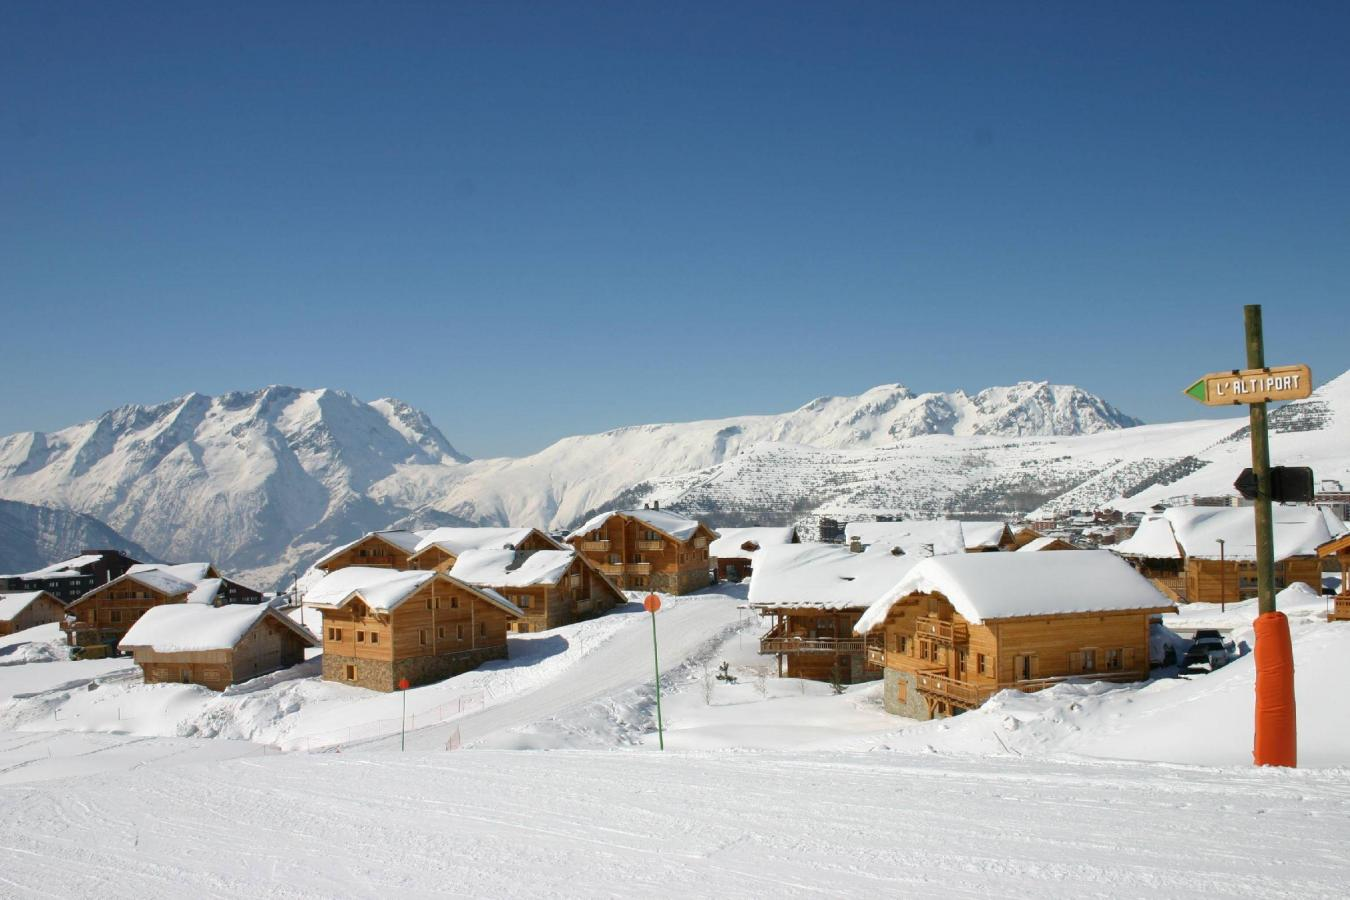 Verleih Les Chalets De L'altiport winter